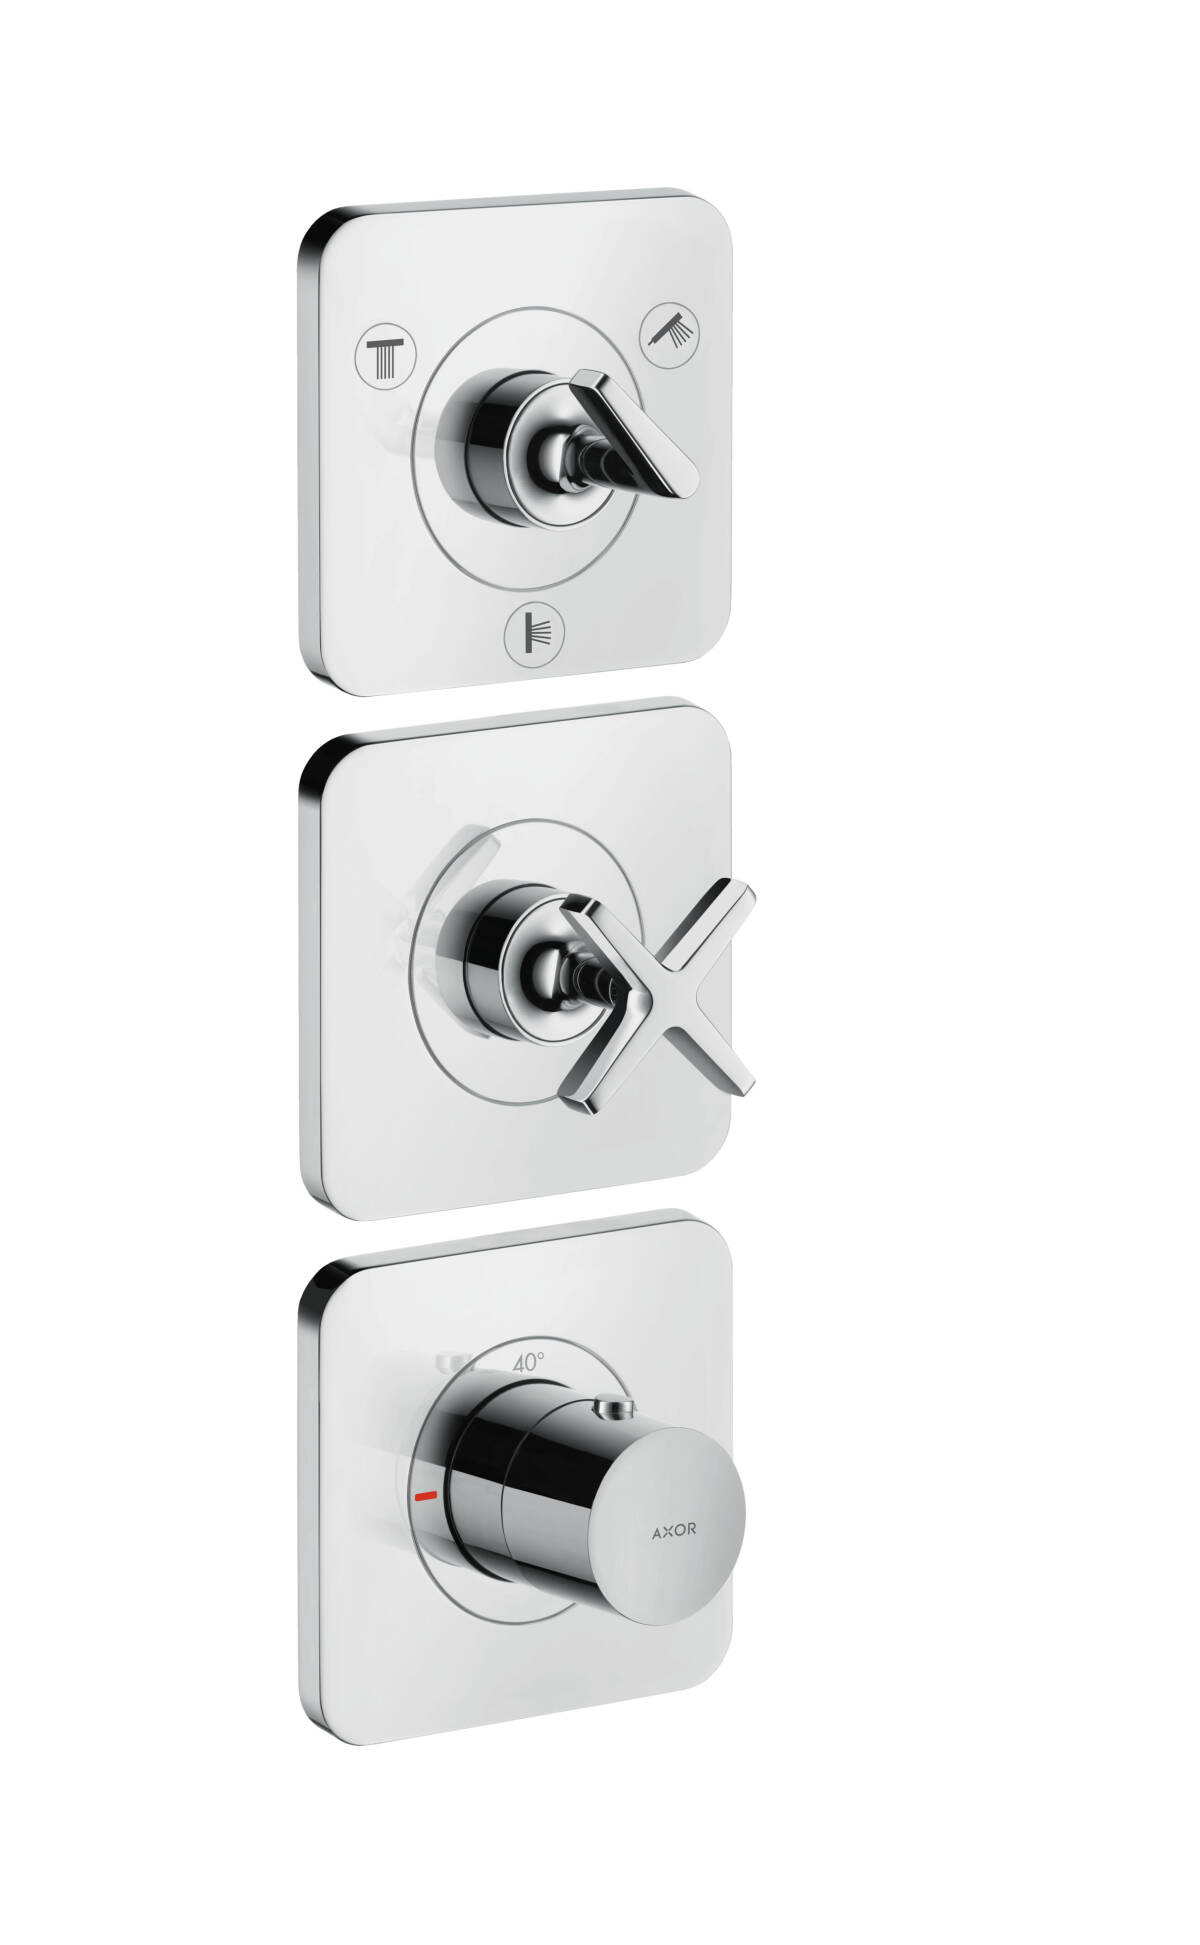 Thermostatic module 380/120 for concealed installation for 3 functions with escutcheons, Chrome, 36704000